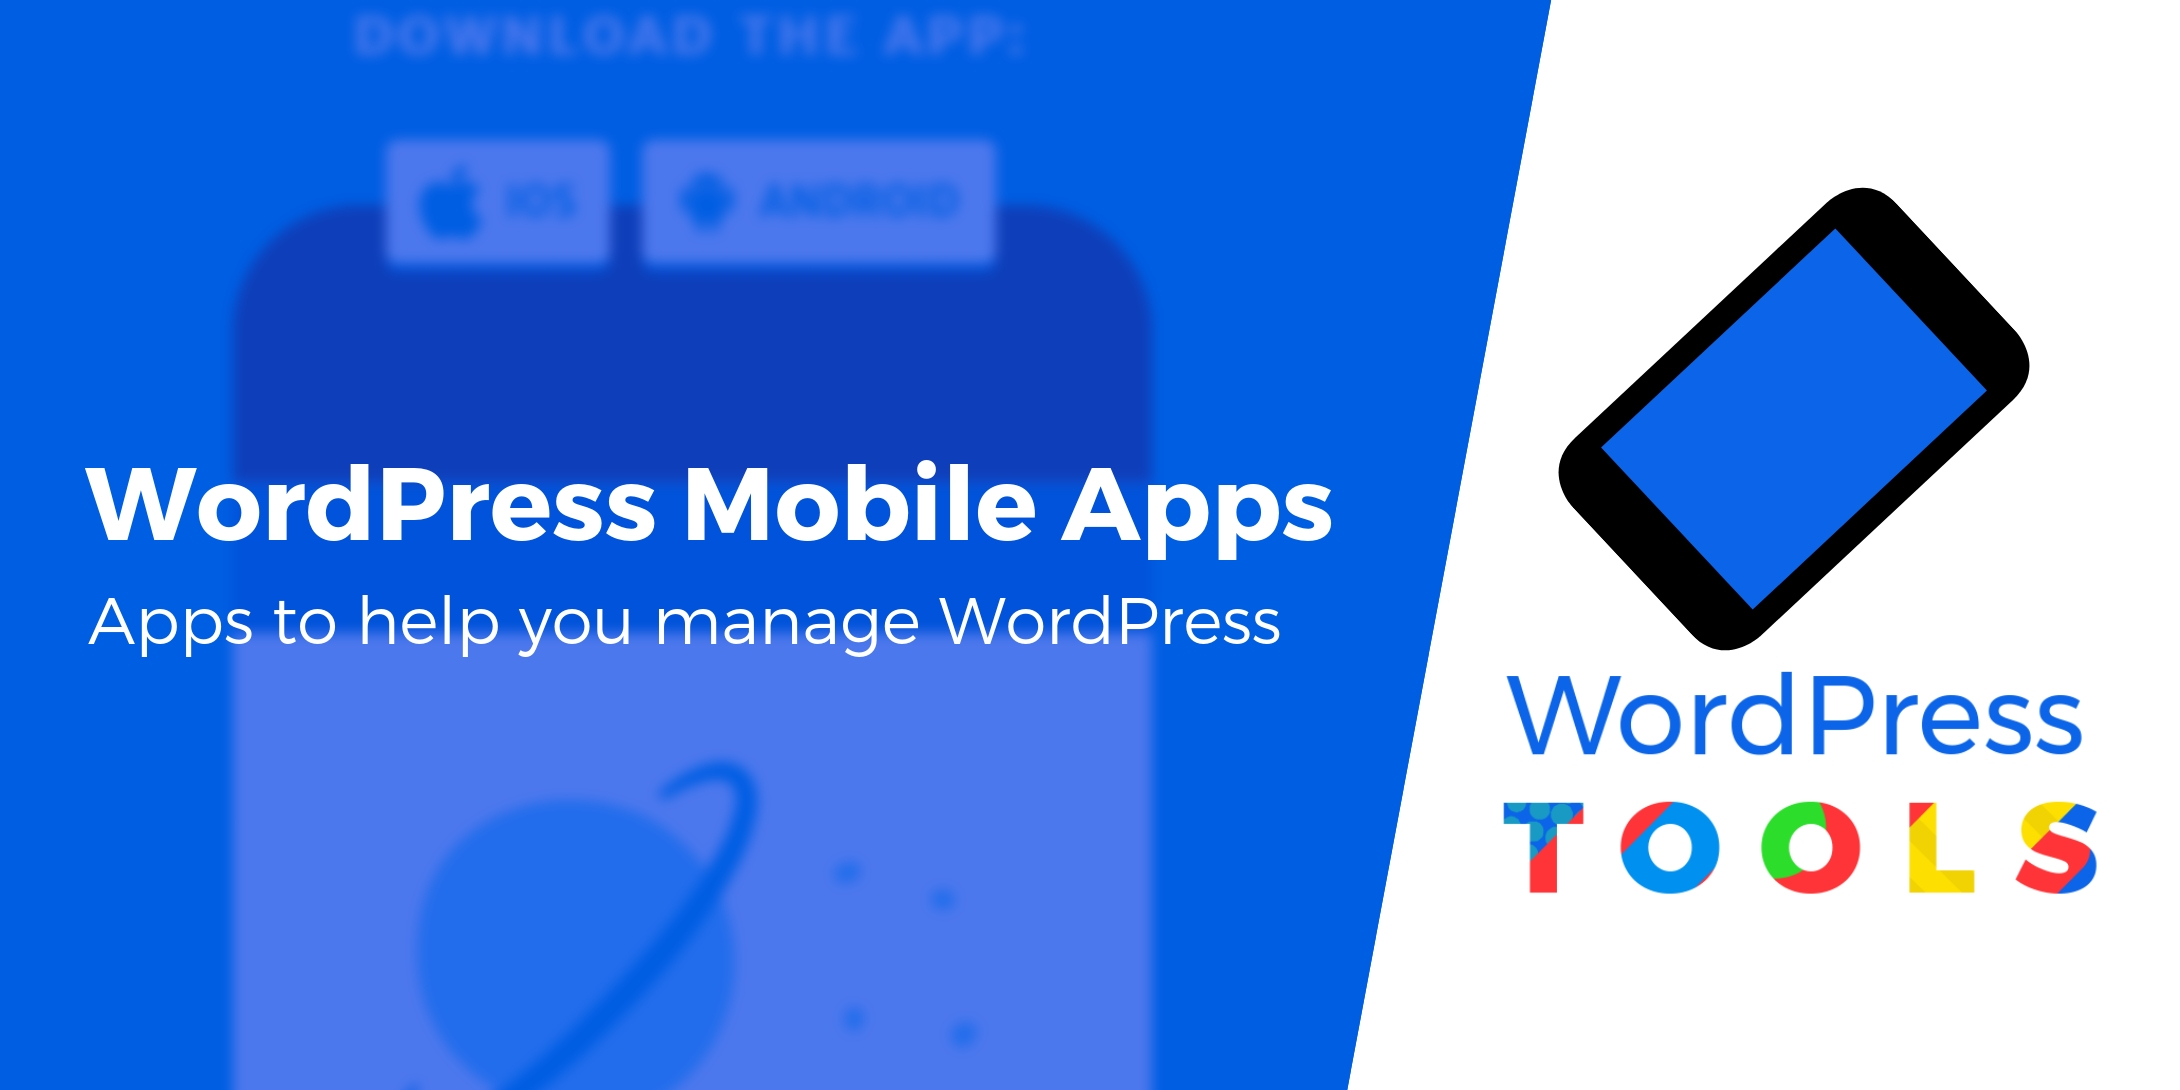 mobile apps to manage WordPress